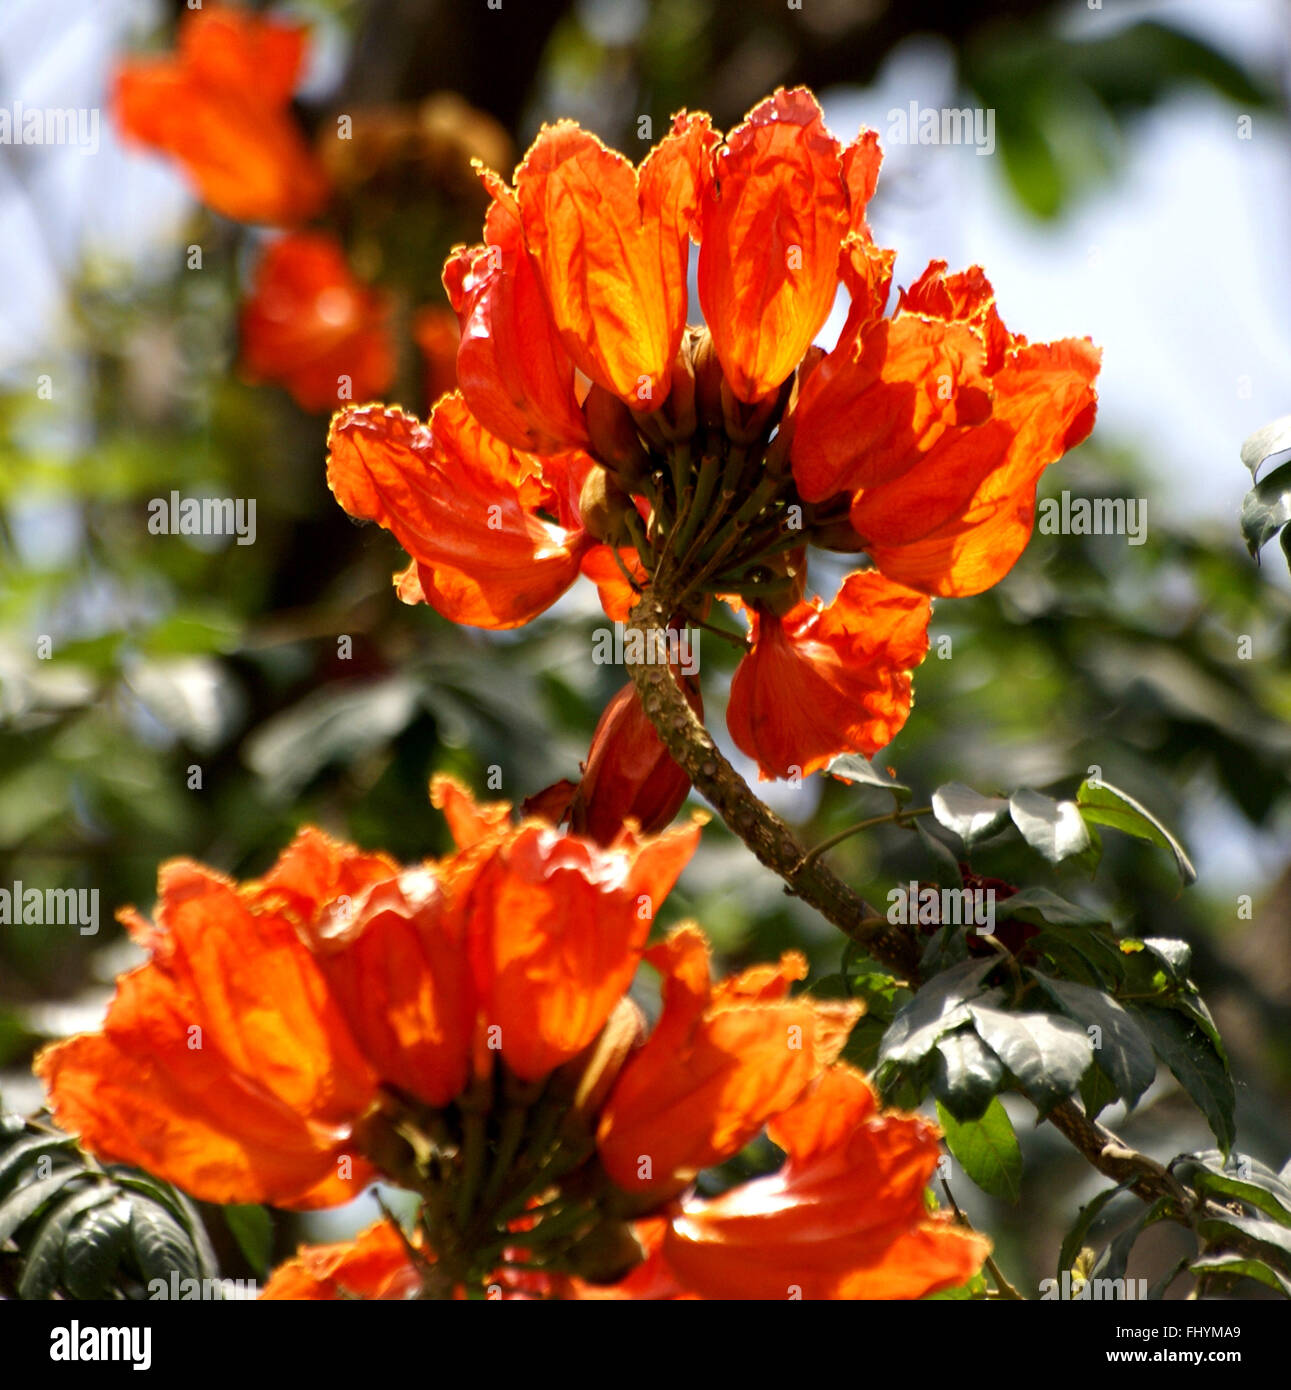 Spathodea campanulata, African Tulip tree, Fountain tree, ornamental tree with reddish-orange cup-shaped flowers - Stock Image